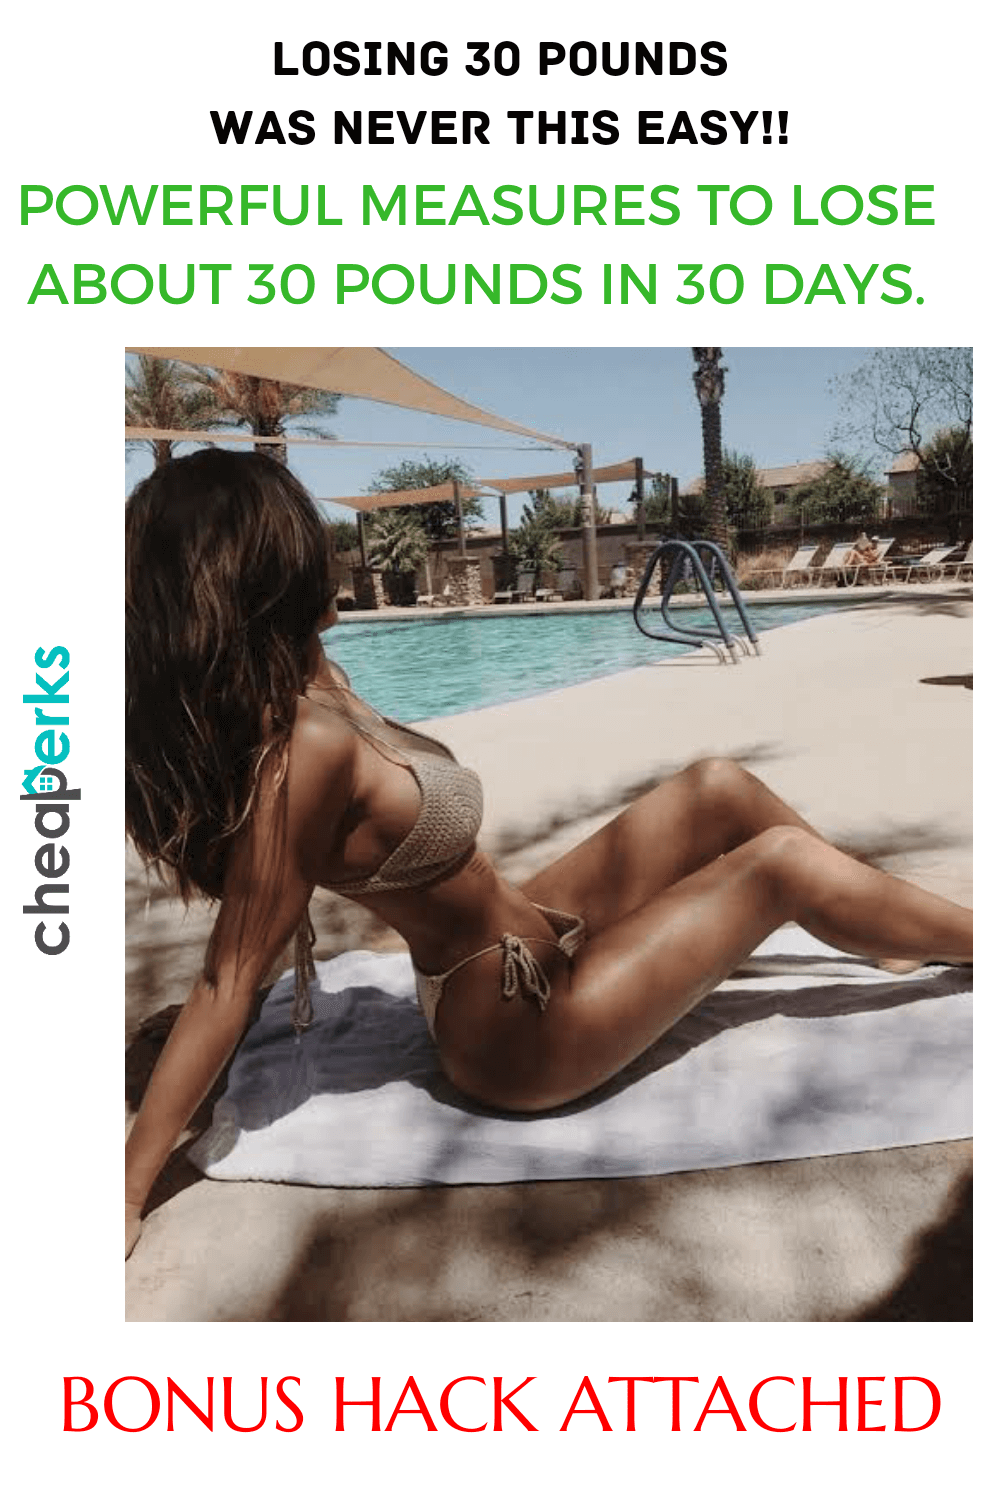 THINGS TO REDUCE WEIGHT EASILY